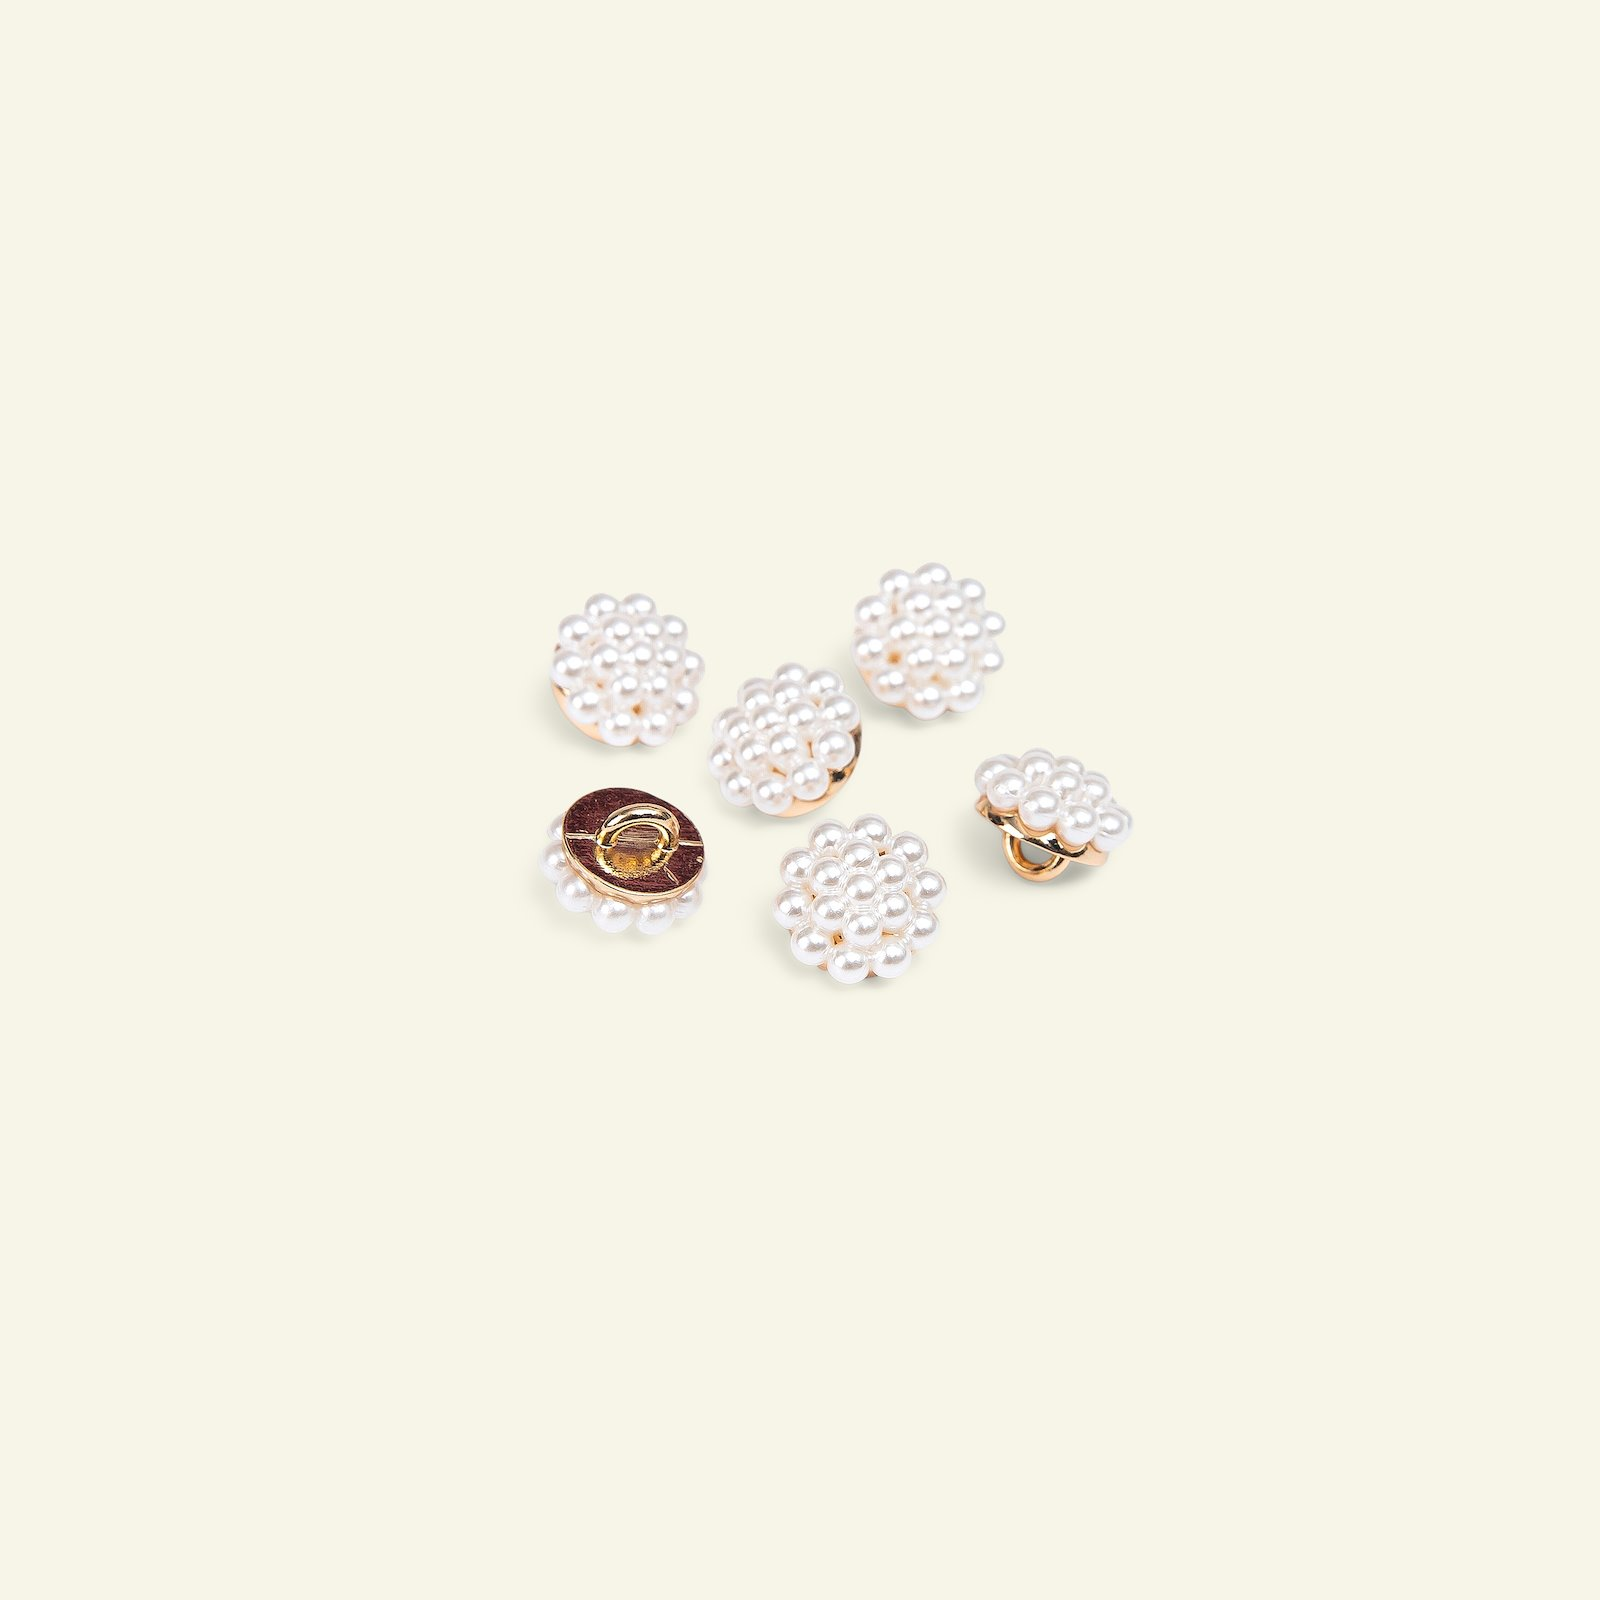 Shank button 11mm m. of pearl/gold 6pcs 40598_pack